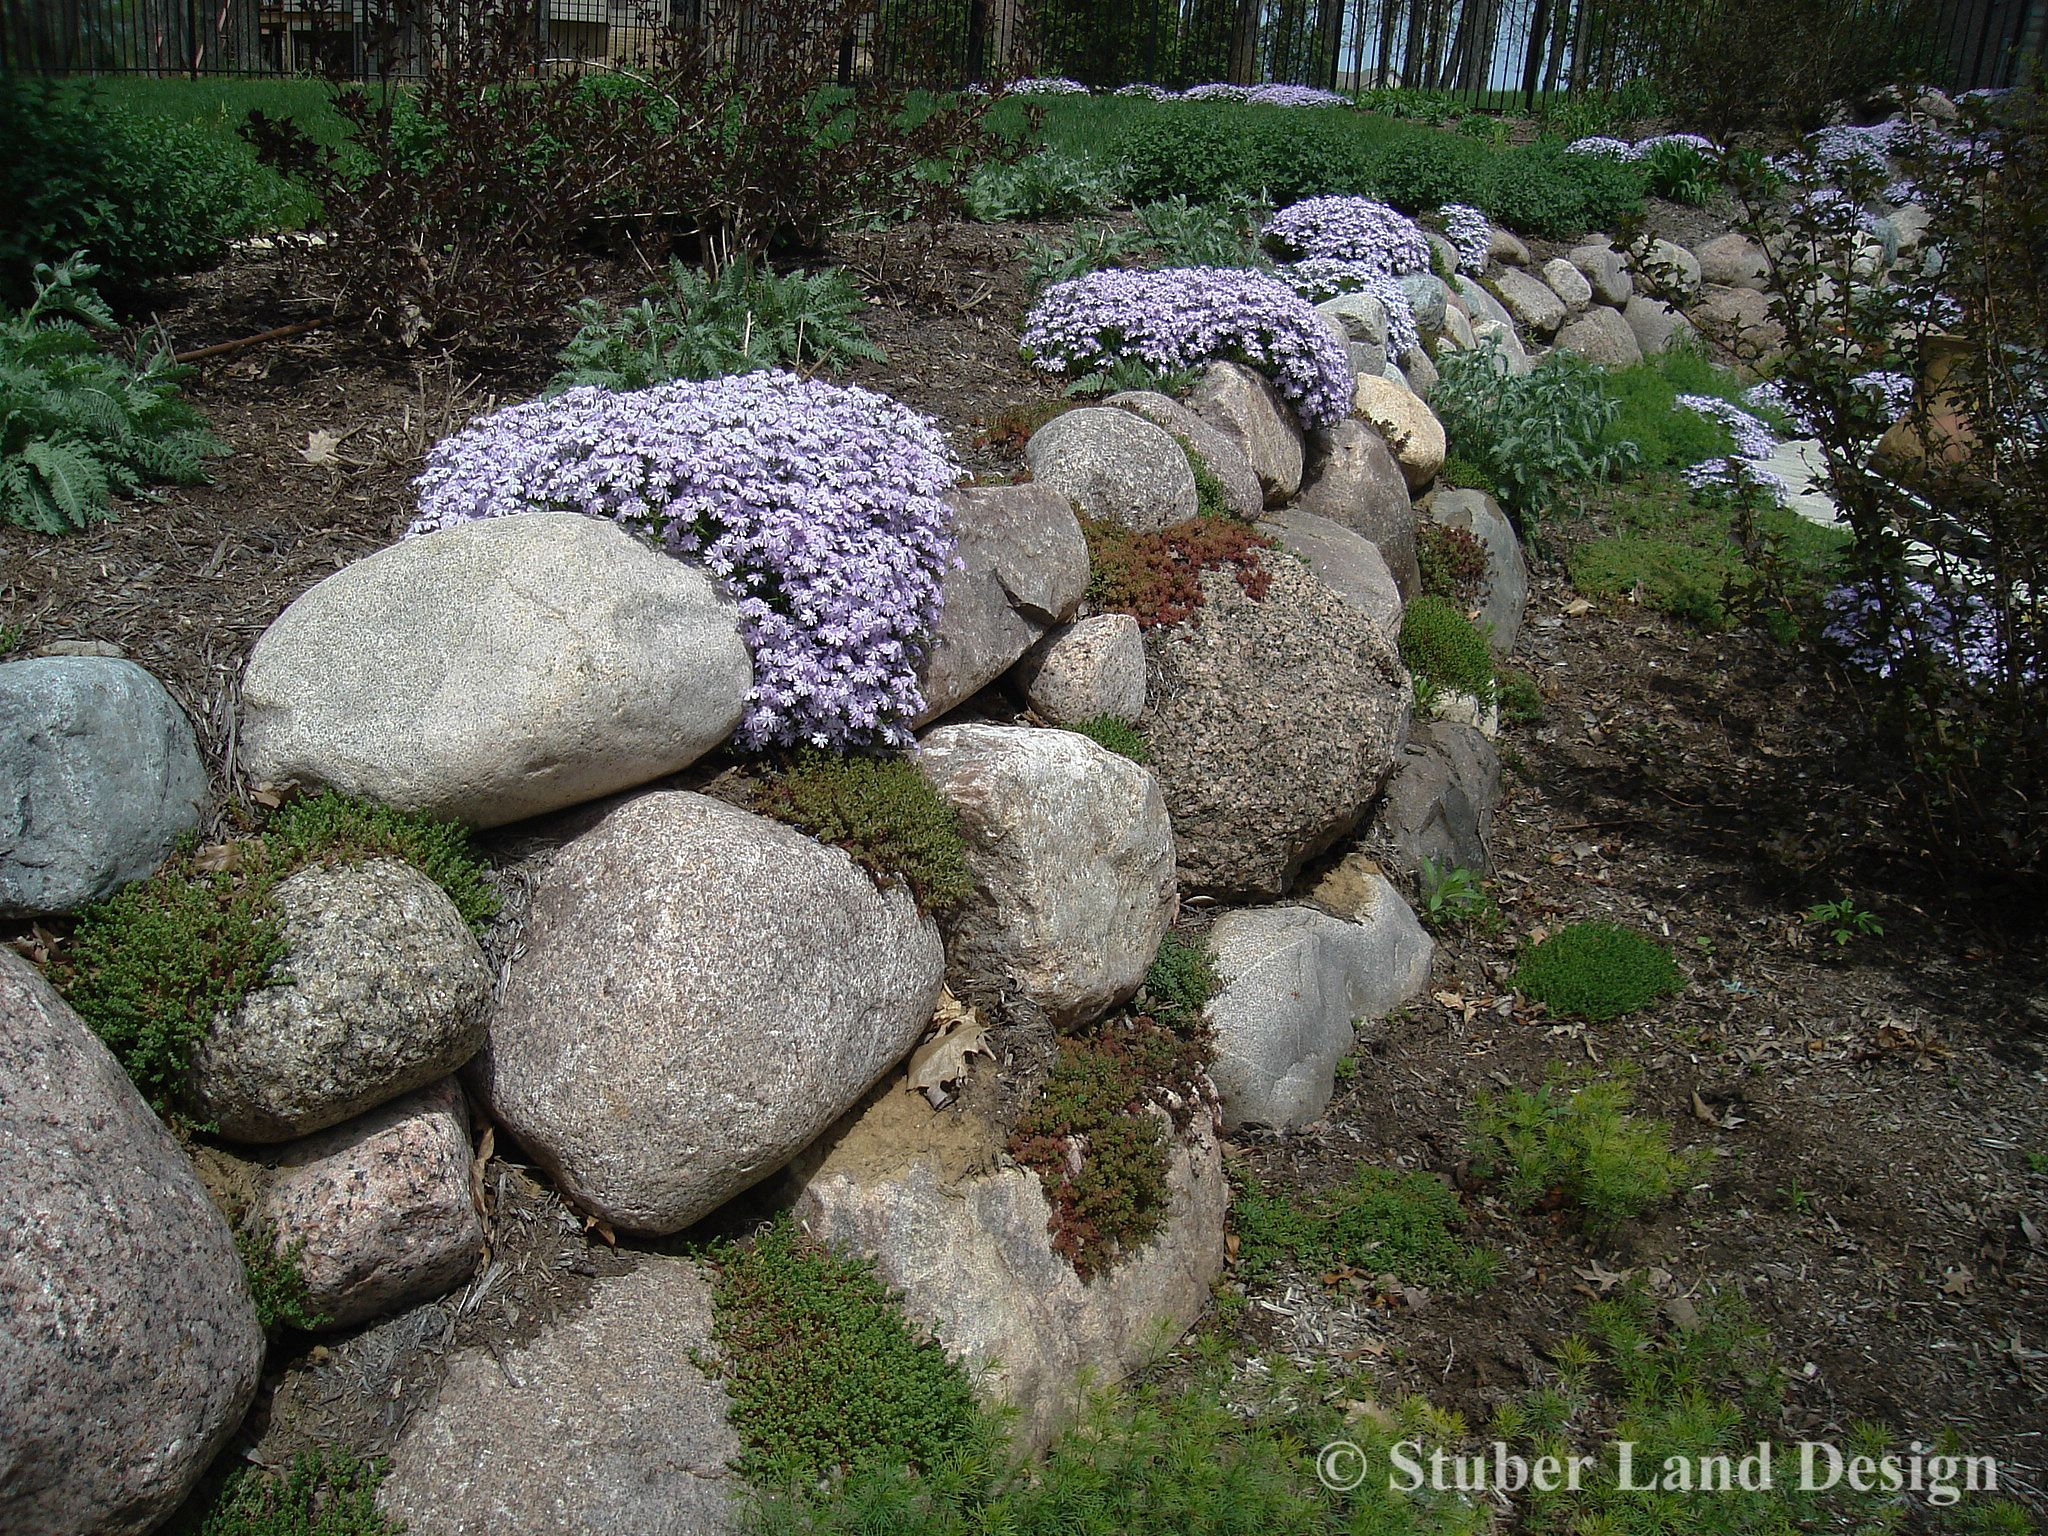 Granite Boulder Retaining Wall With Sedum Plantings Nestled In The Crevices  And Phlox Draping Over The Top Of The Wall Architectural Landscape Design